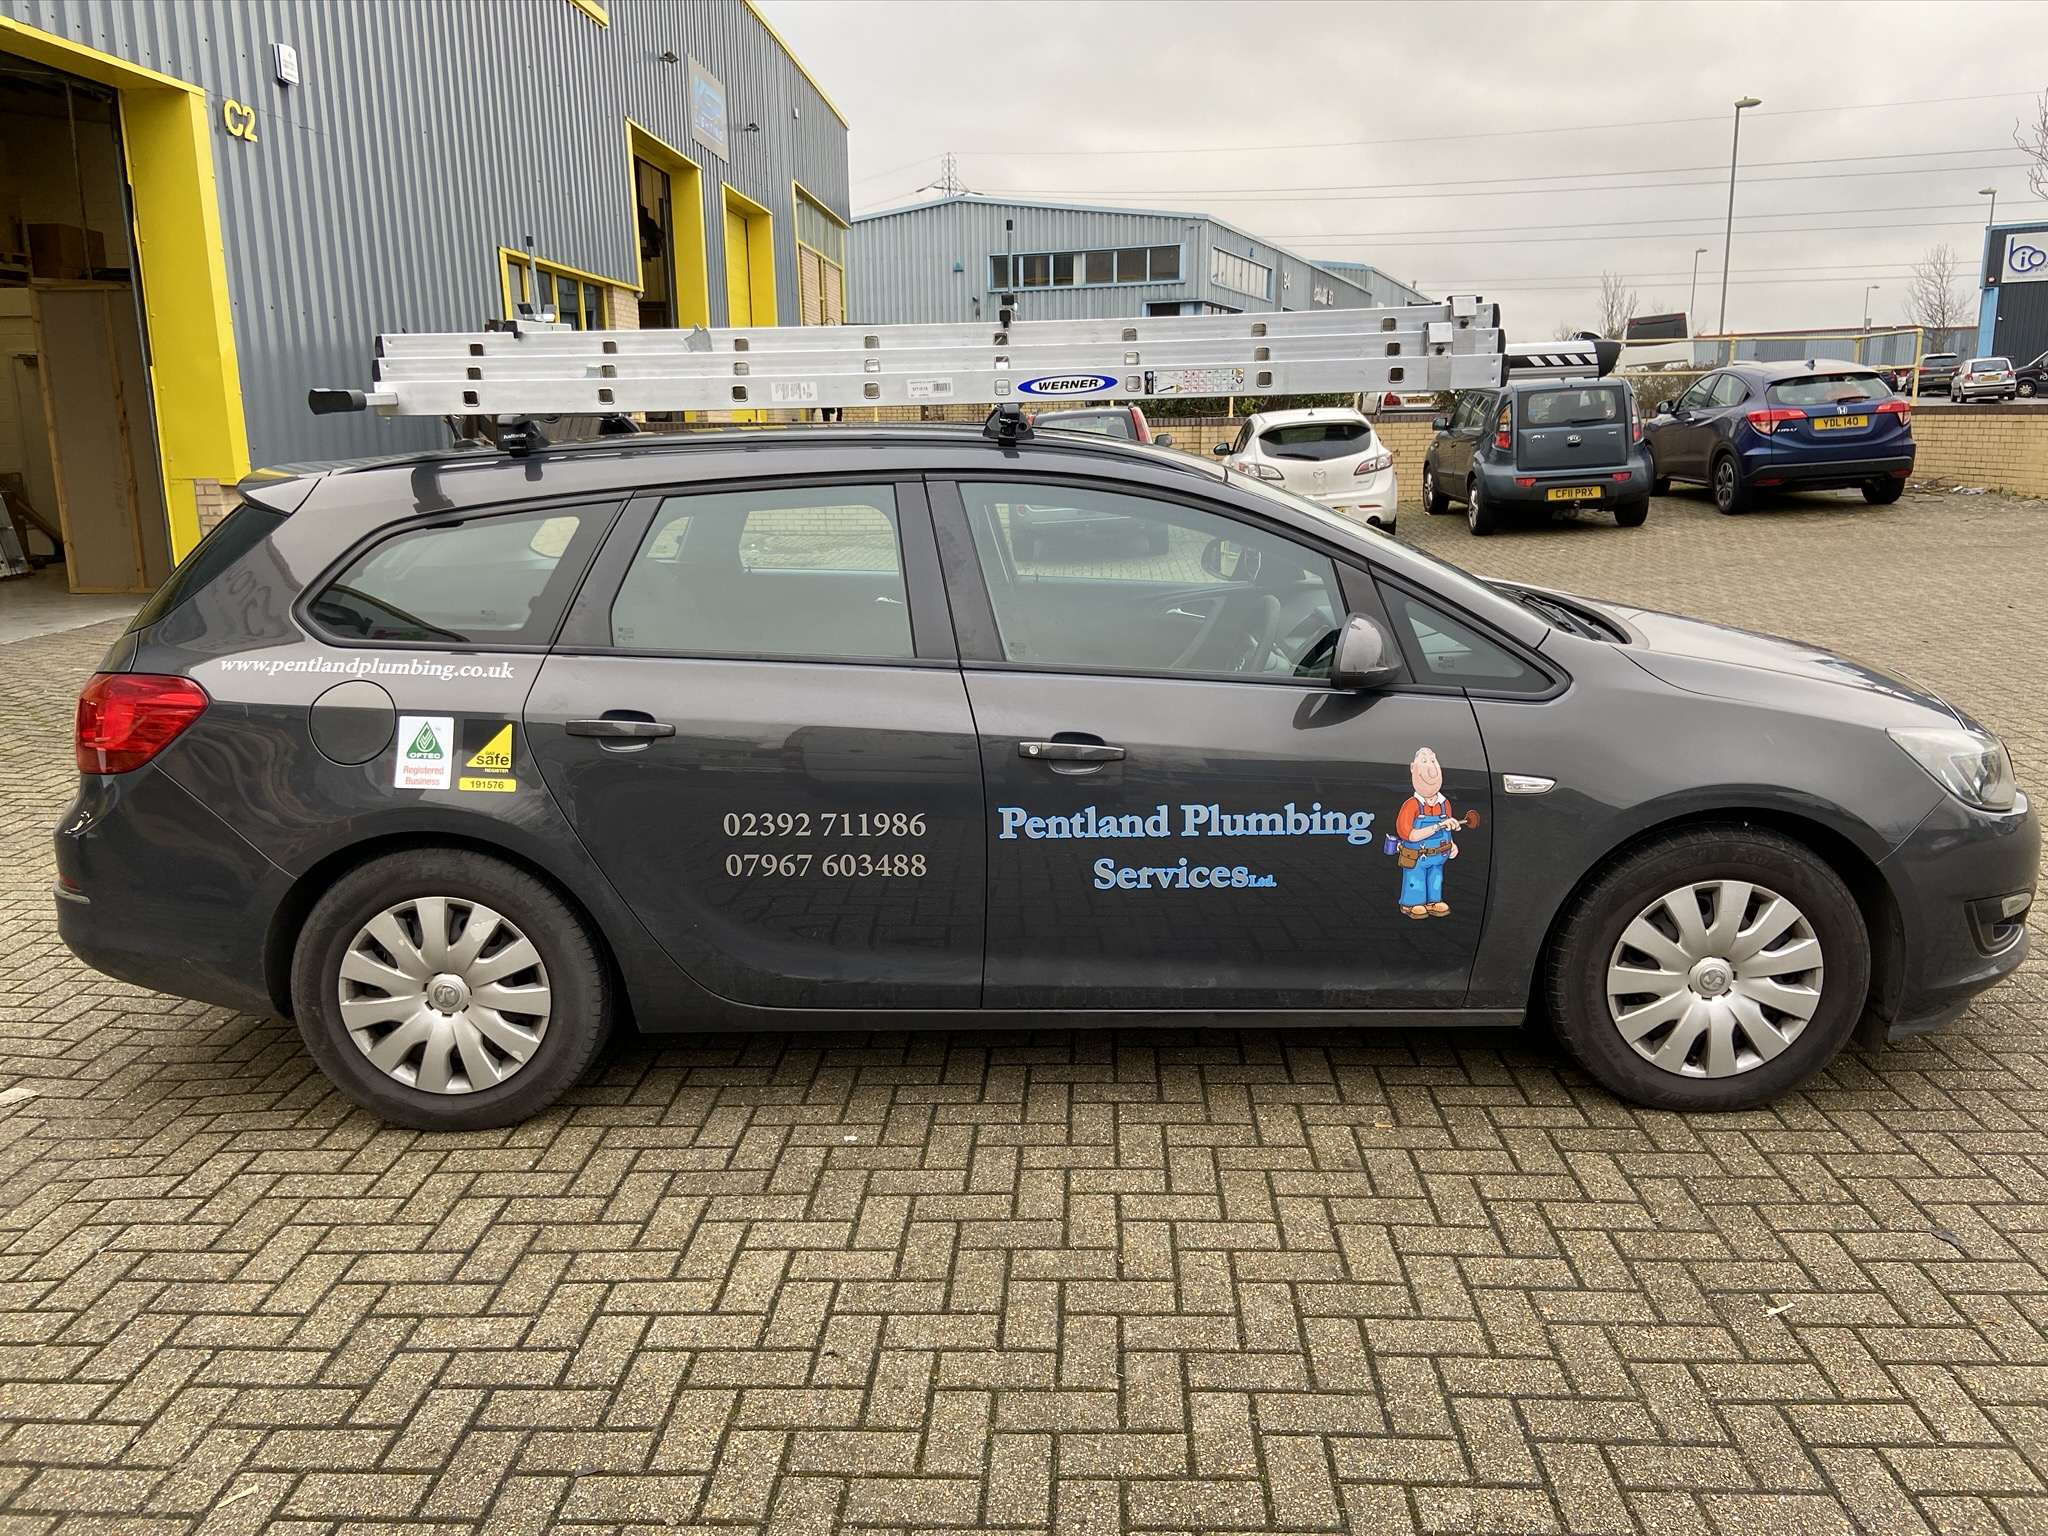 Pentland Plumbing Services car sticker